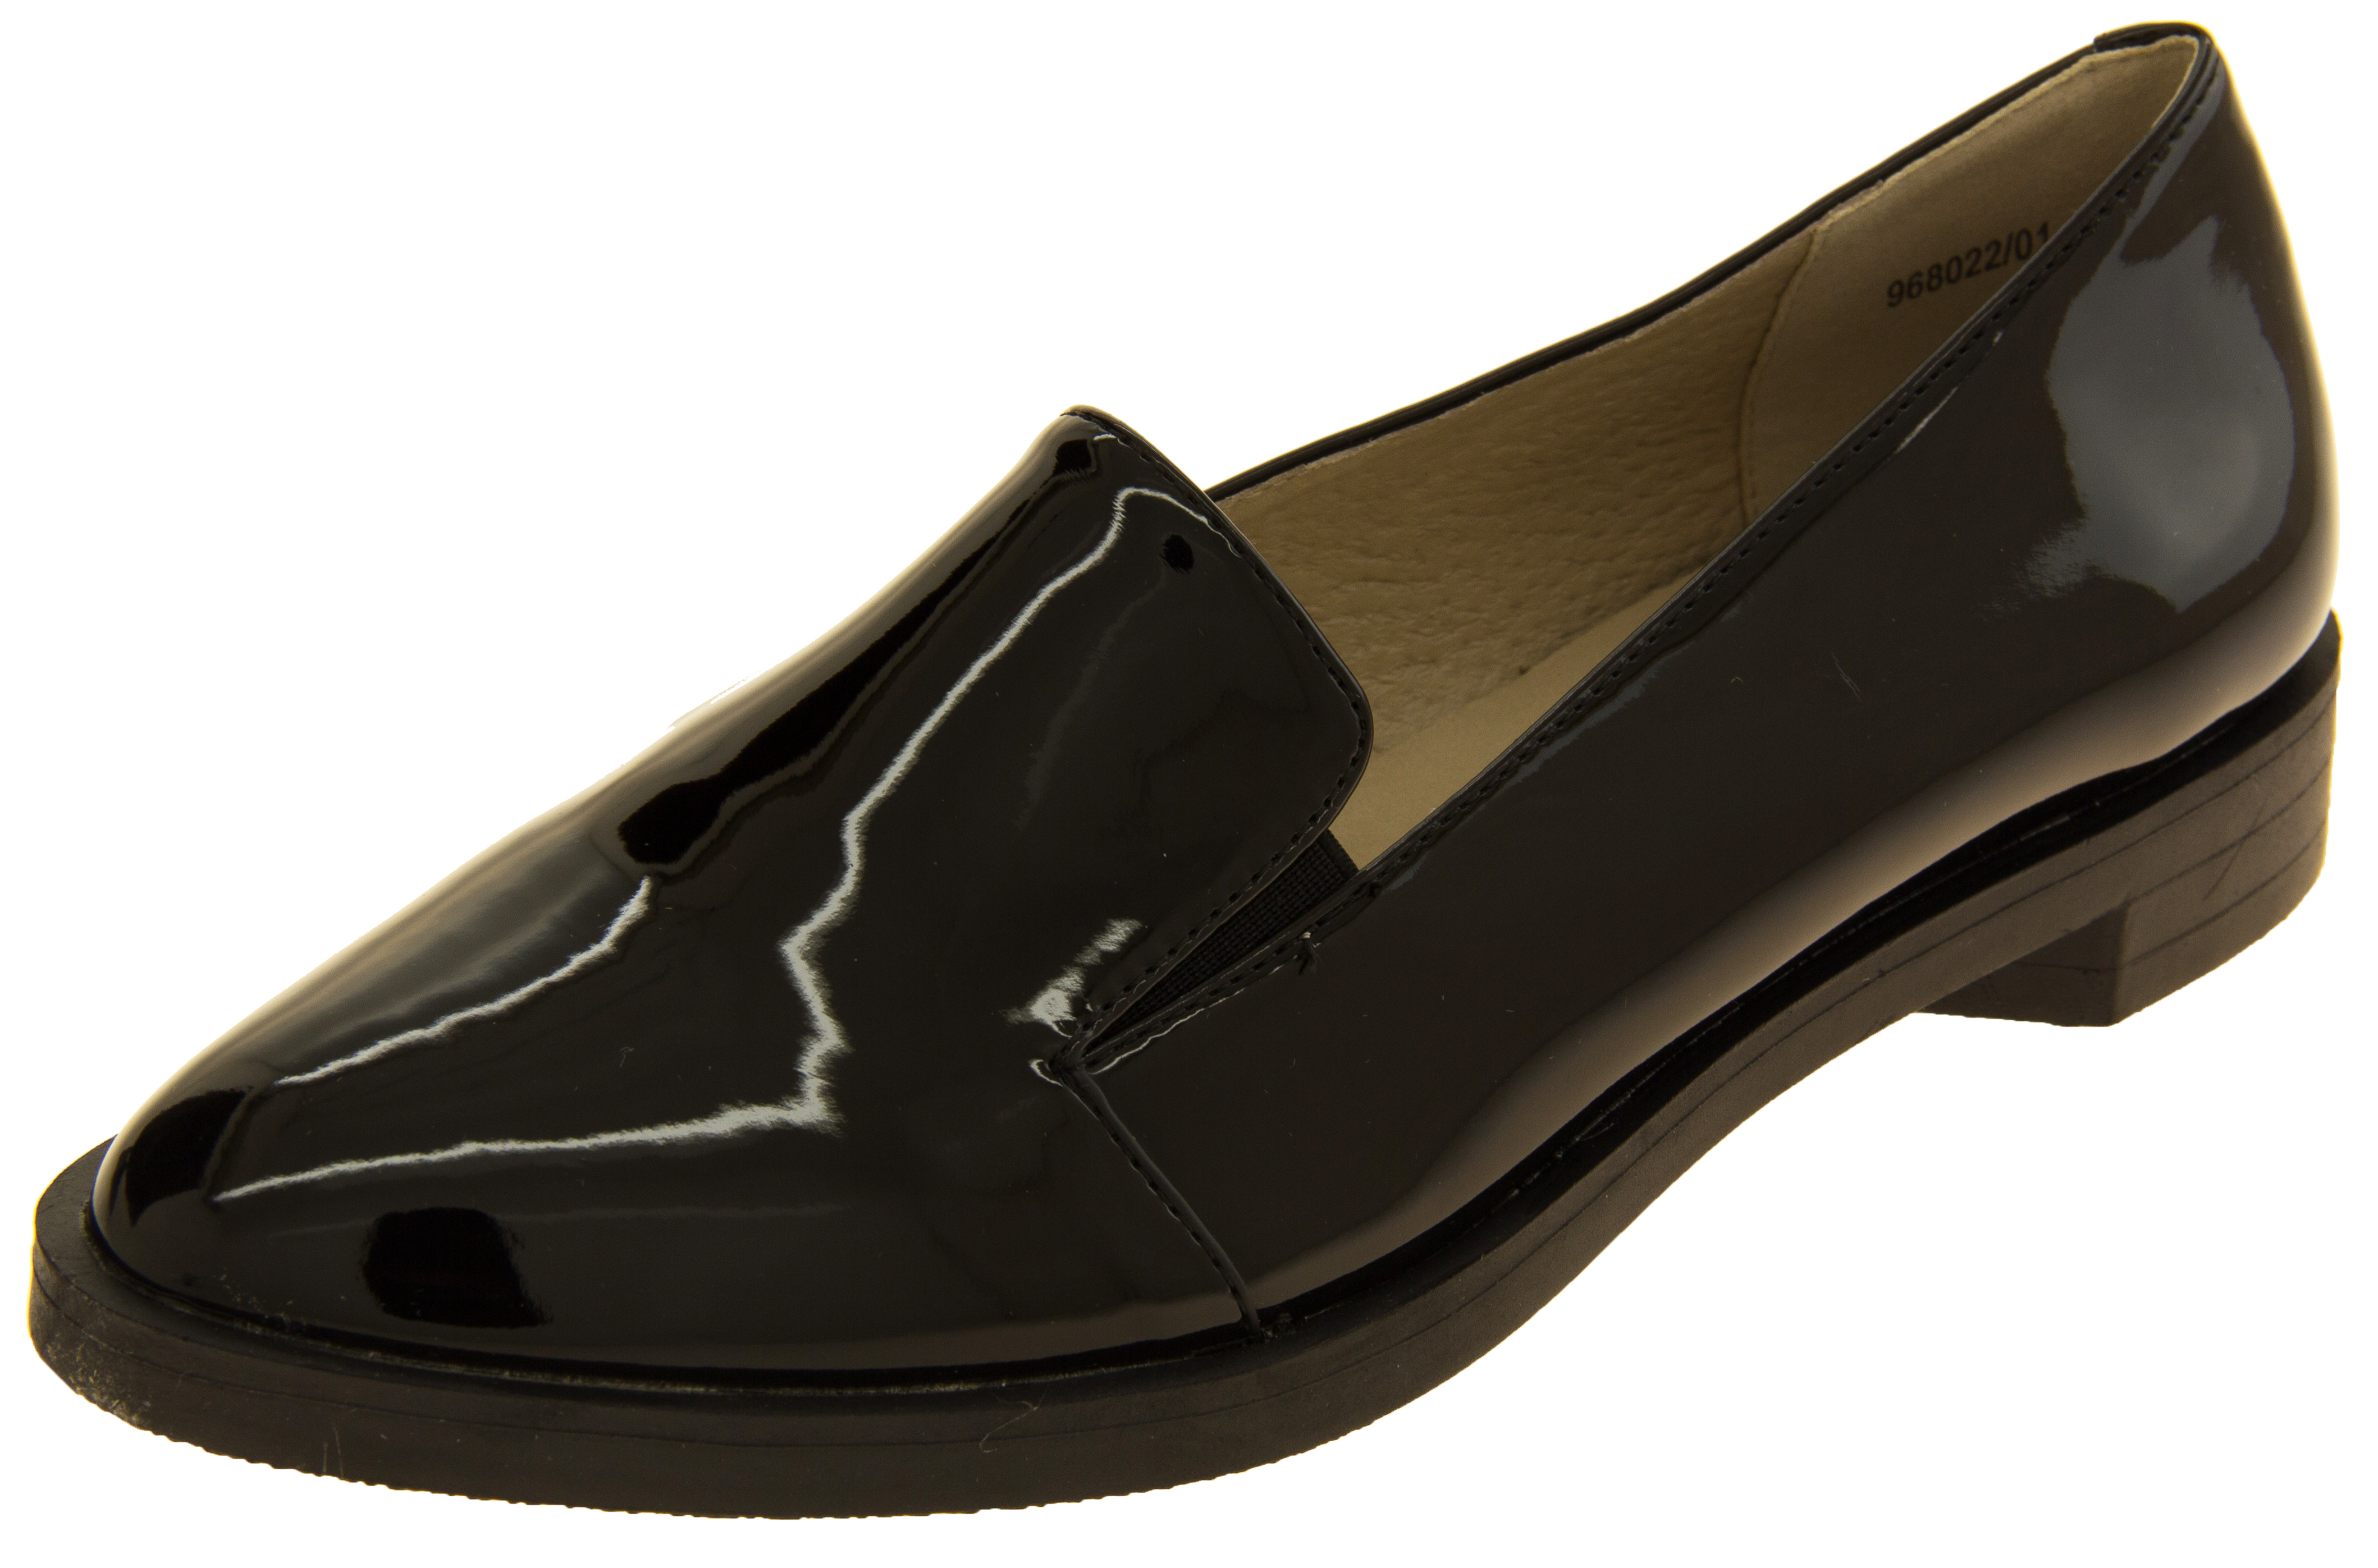 f2723a2f718b Ladies Betsy Elegant Flat Faux Leather Patent Loafers Shoes | Womens, Mens, Kids  Shoes | Heels, Trainers & Boots | Footwear Studio